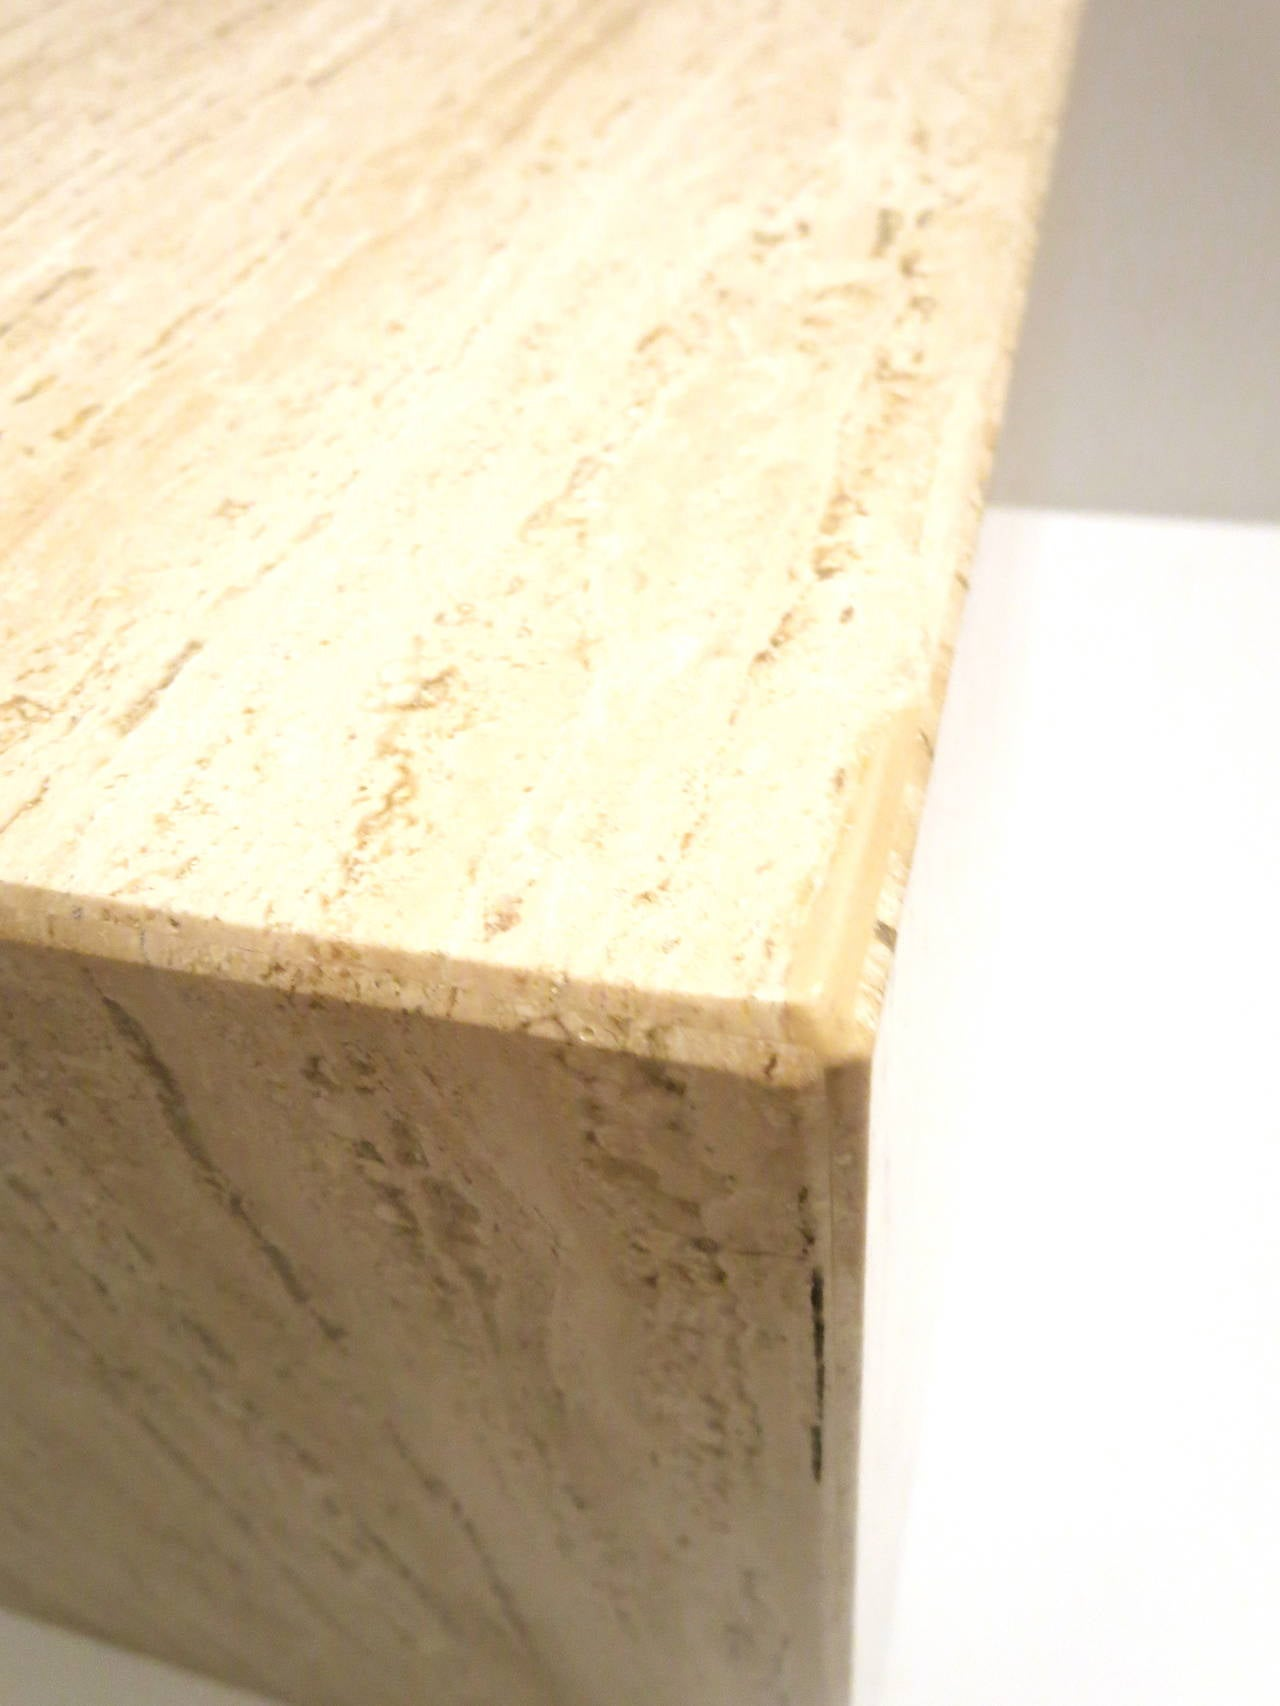 Square Cube Marble Base With Beveled Edge Corners Cocktail